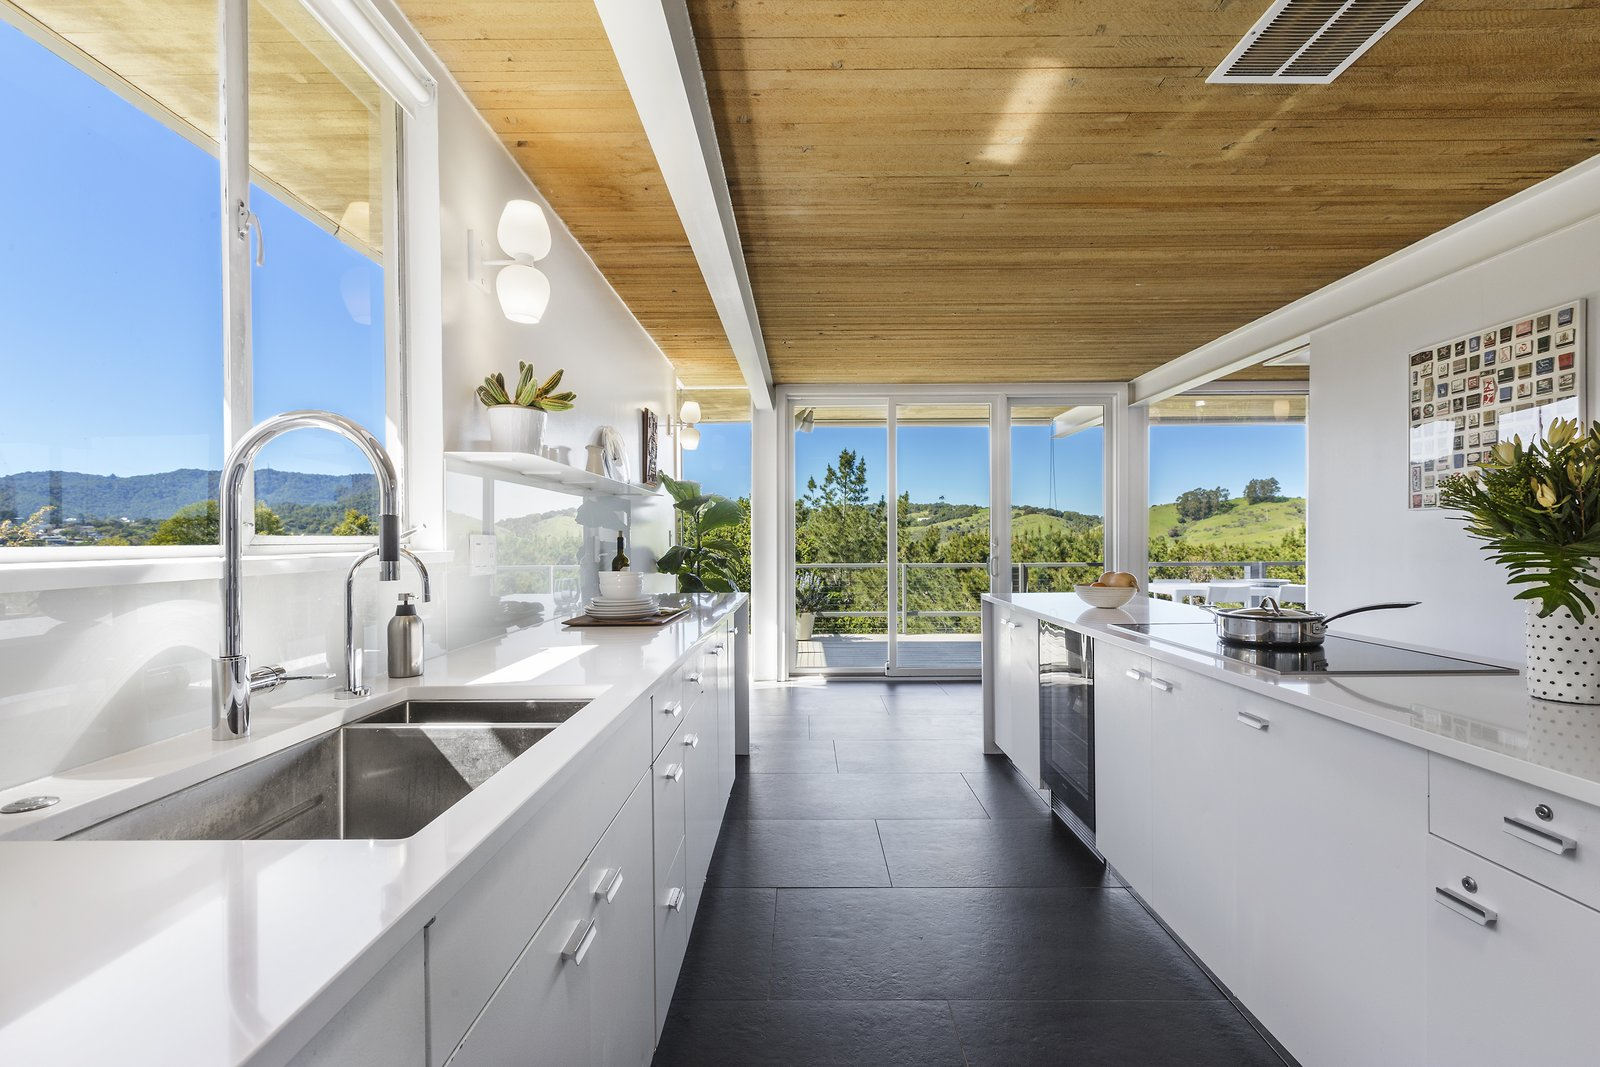 Kitchen, Wall Lighting, White Cabinet, Open Cabinet, Cooktops, Undermount Sink, and Beverage Center  Photo 13 of 17 in Spend the Night in an Iconic Case Study House North of San Francisco